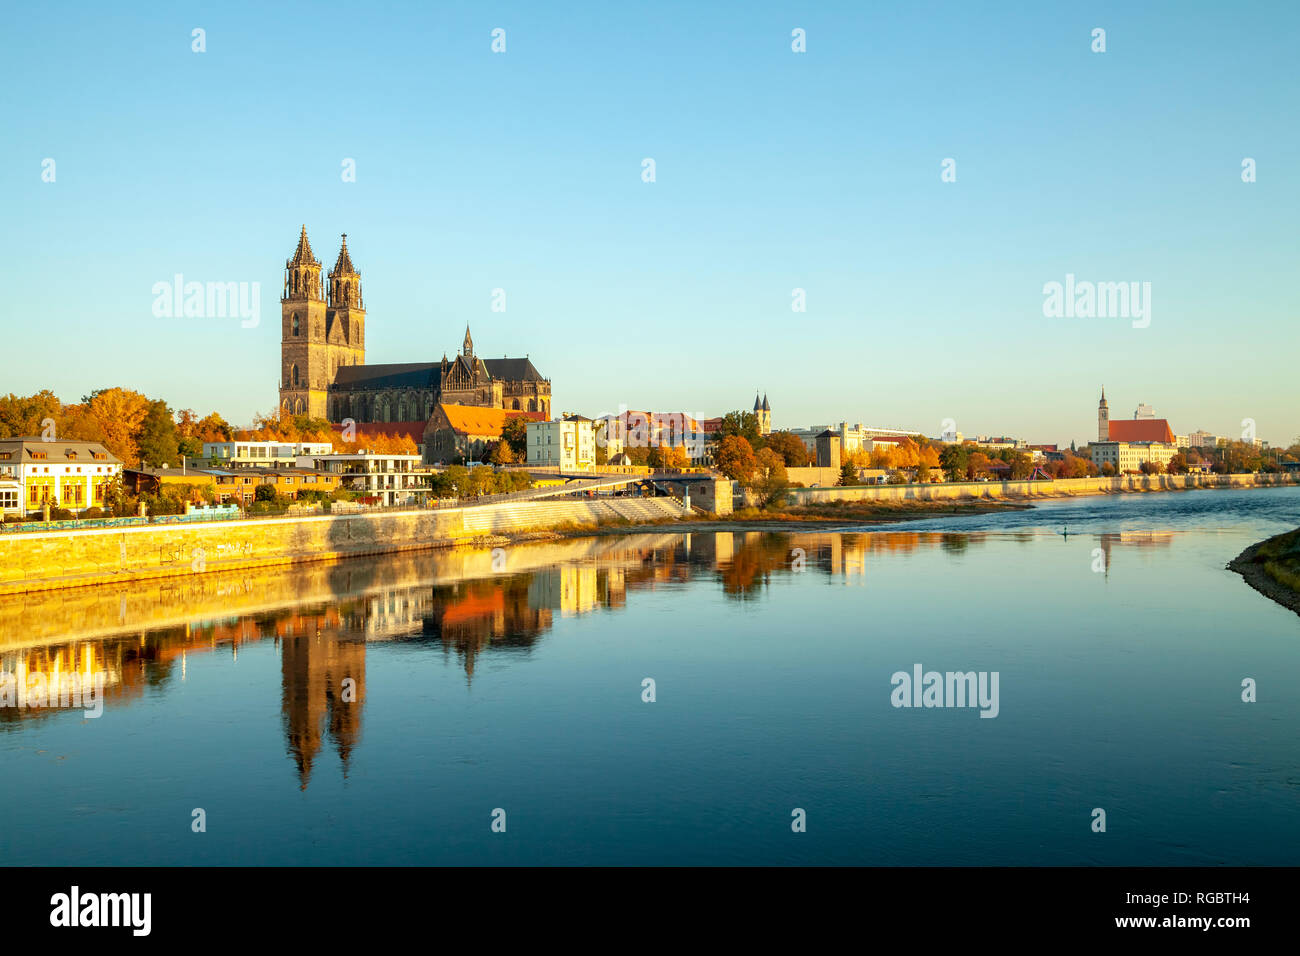 Germany, Saxony-Anhalt, Magdeburg, Cathedral of Magdeburg and Elbe river - Stock Image